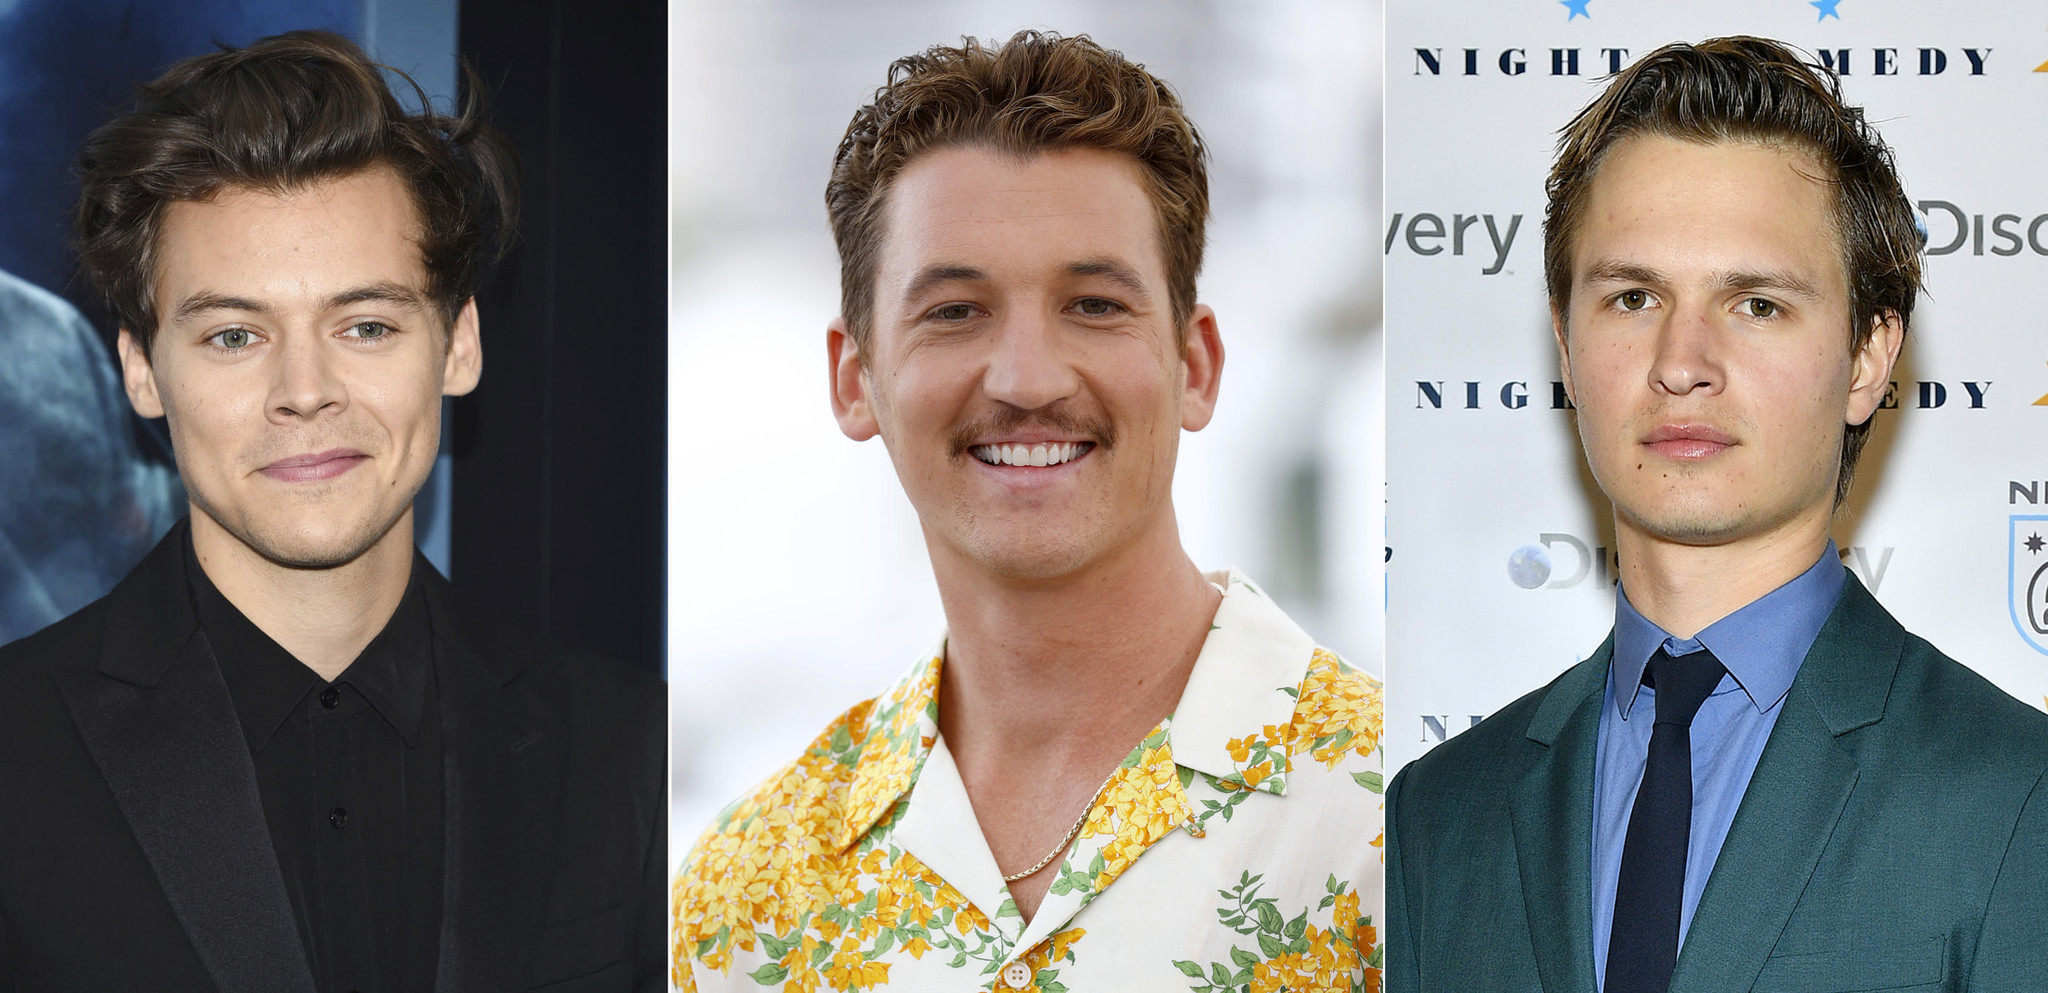 A little more action: Harry Styles, Miles Teller and Ansel Elgort in contention to portray Elvis Presley